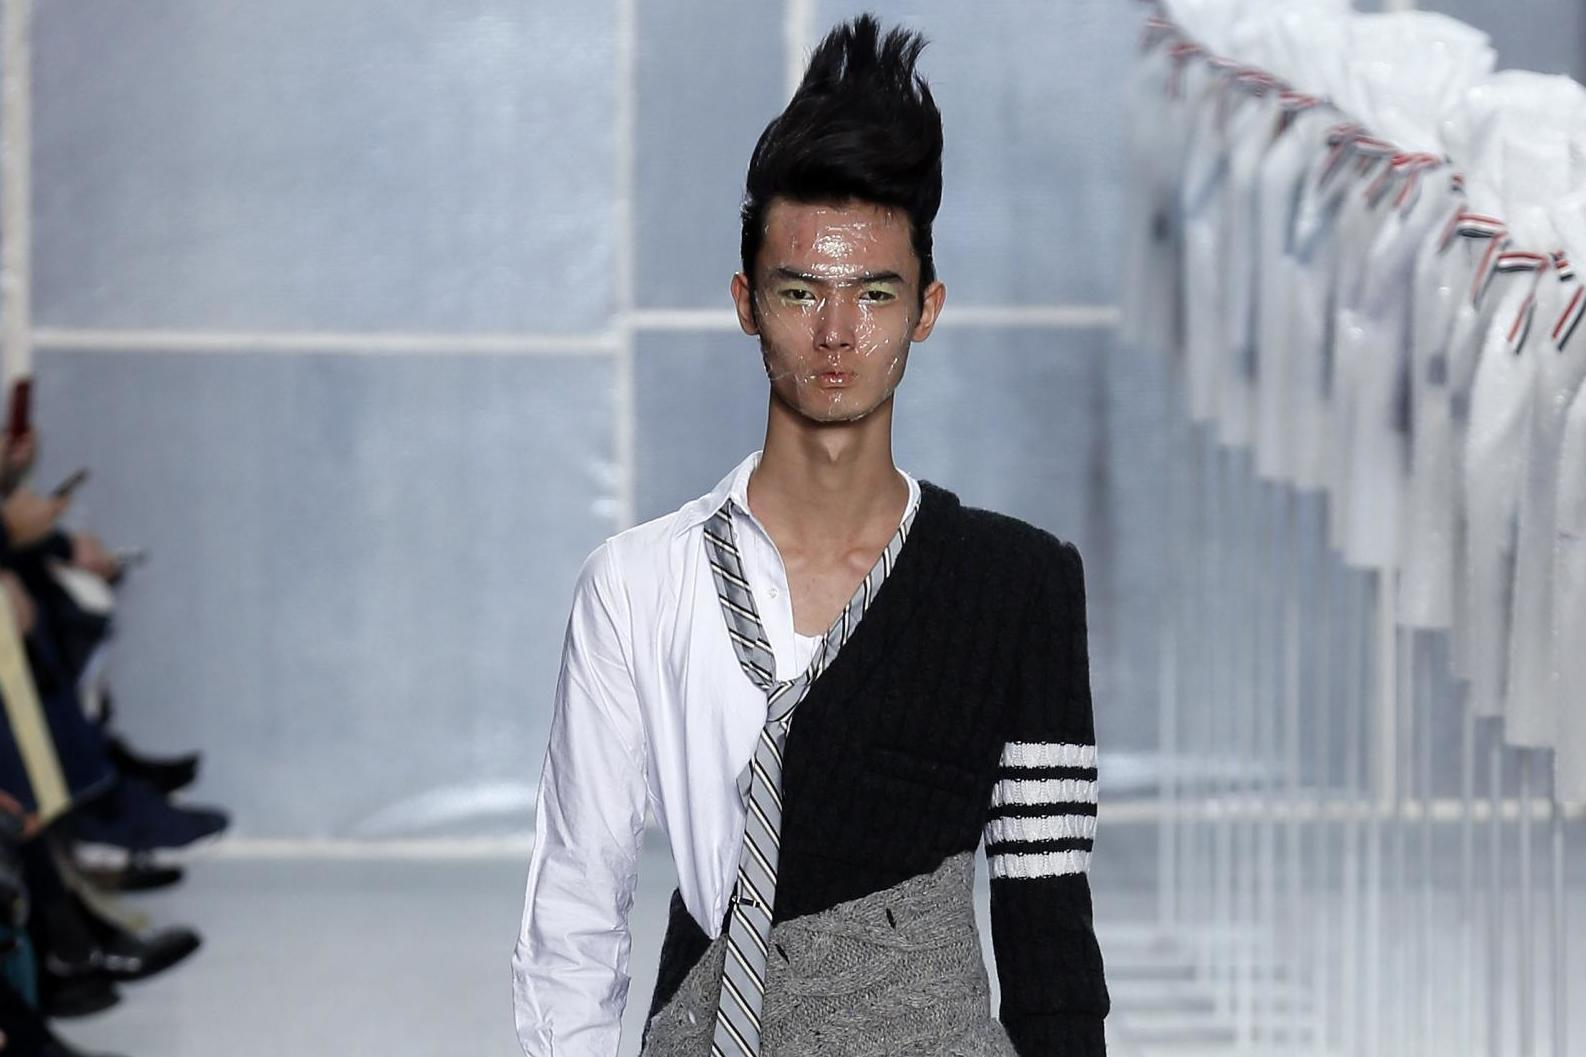 Troll doll-inspired hair is the latest style trend for men